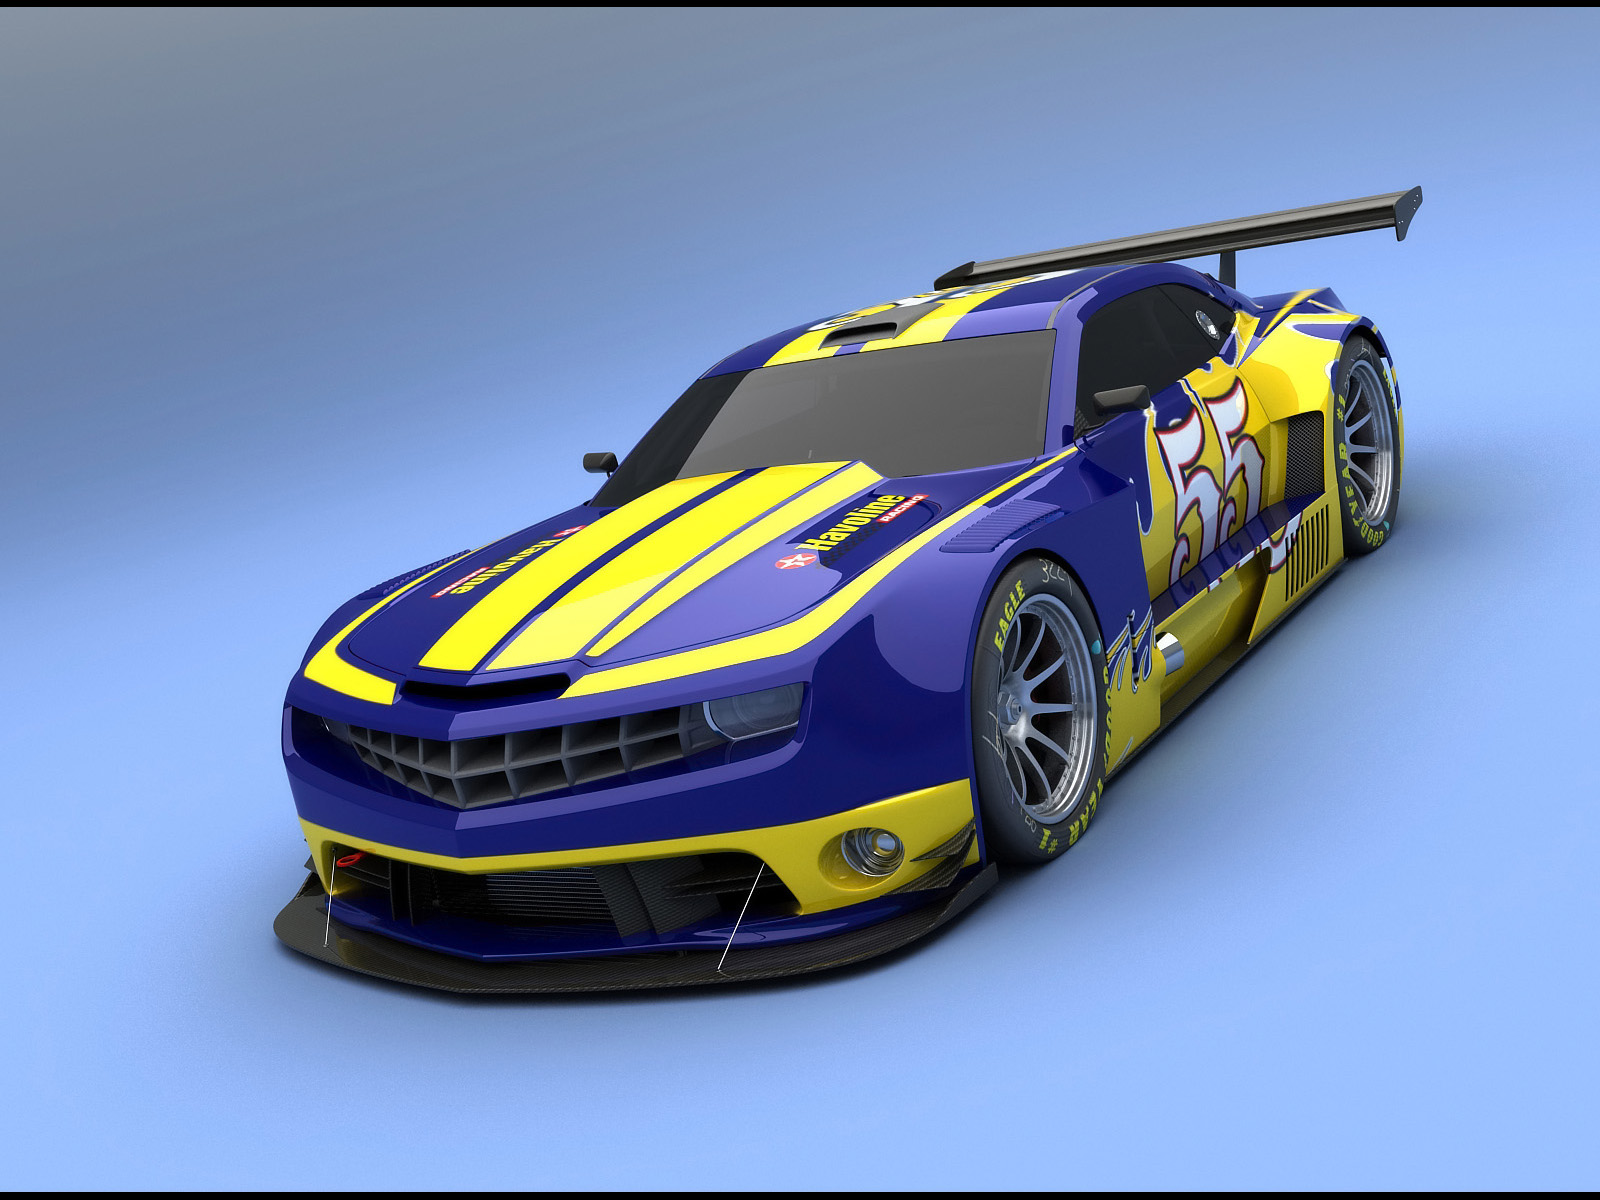 Camaro Alms Blue And Yellow Wallpapers Camaro Alms Blue